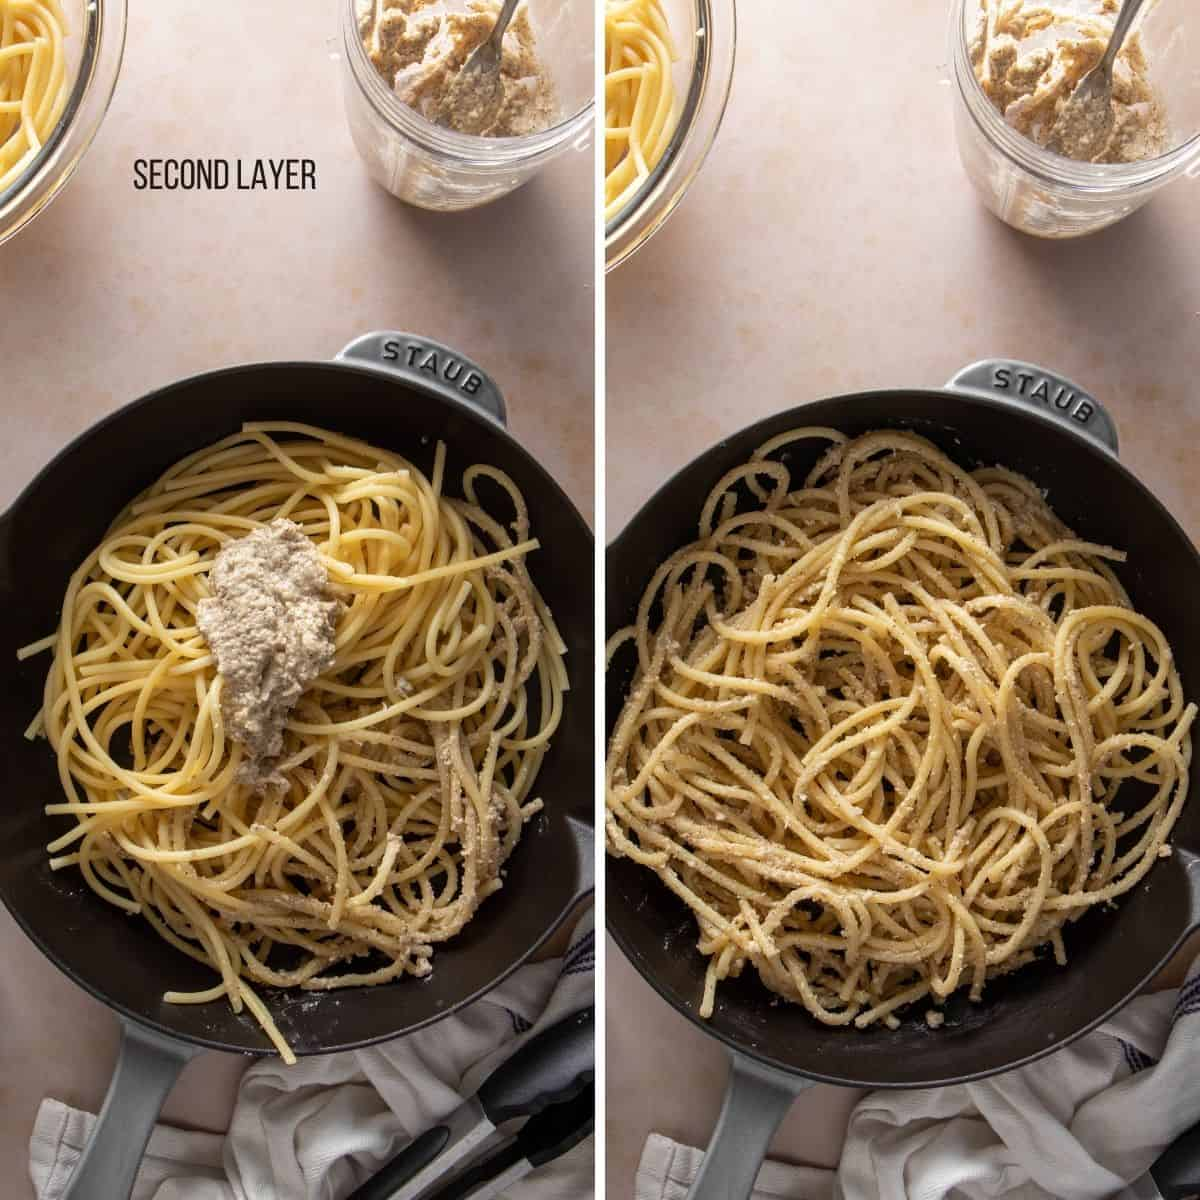 Collage showing secondlayer of pasta with the cheese sauce on it (before and after mixing)